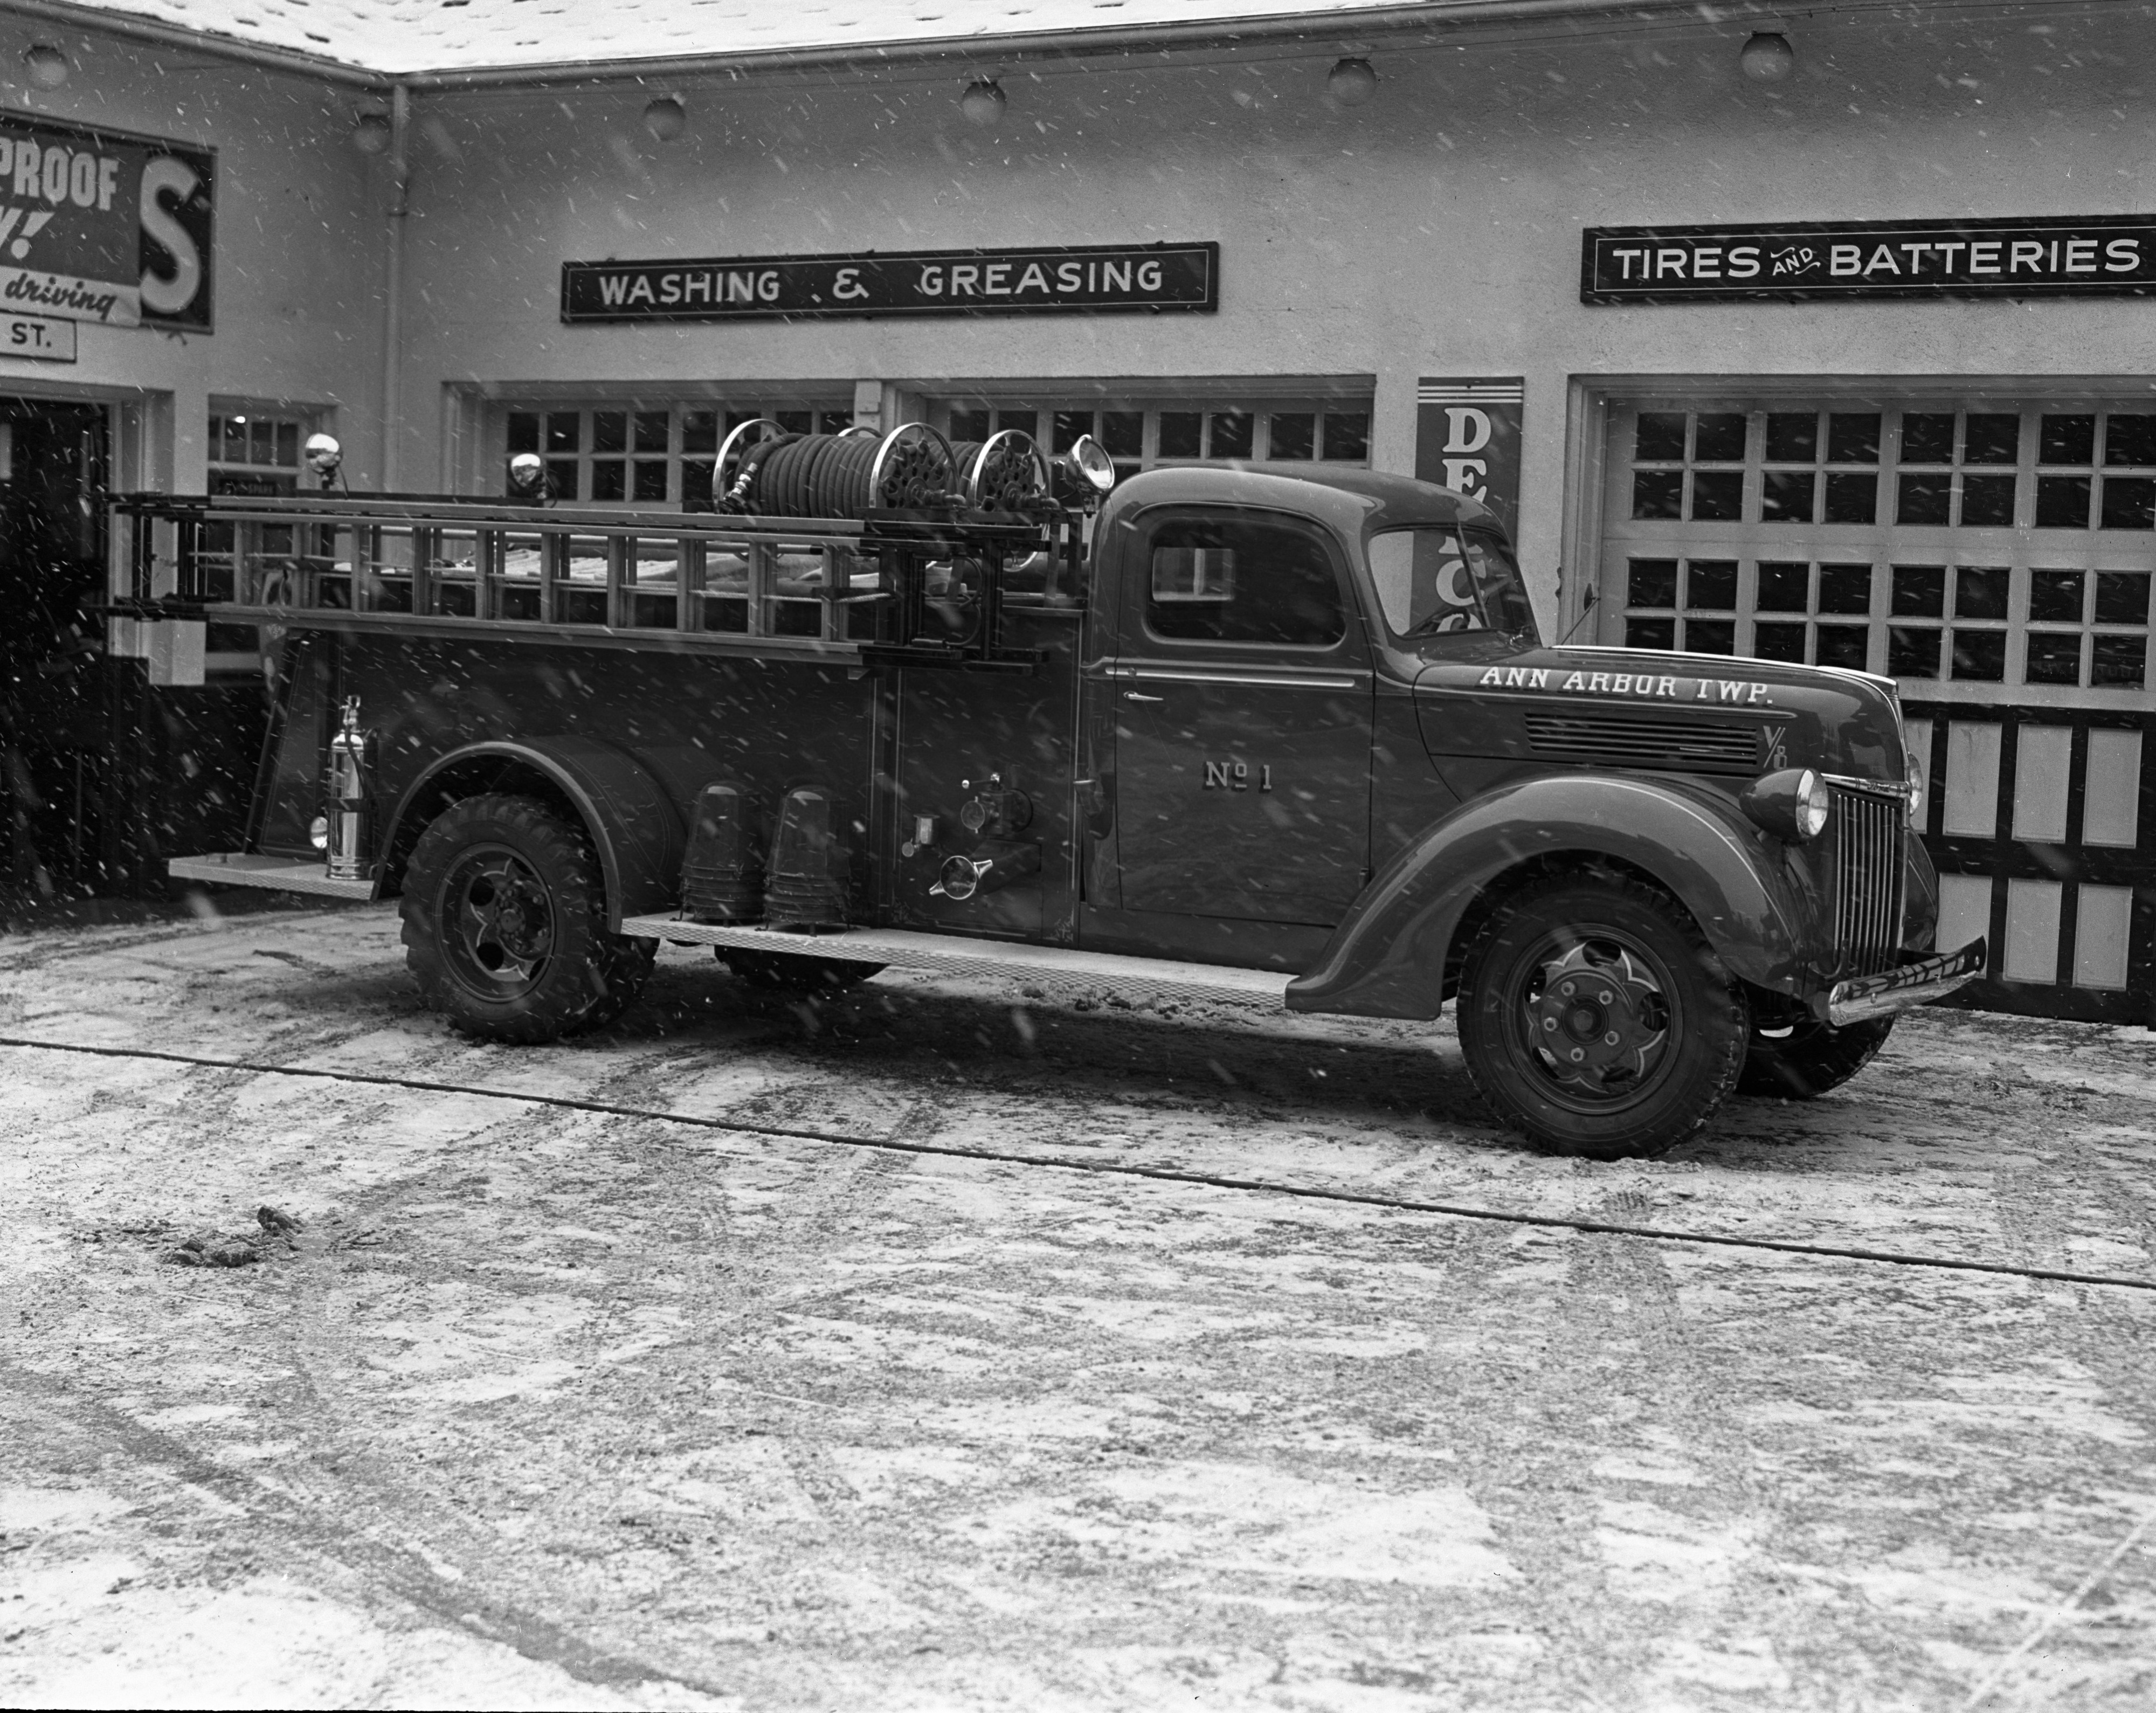 Ann Arbor Township Fire Engine, January 2, 1940 image